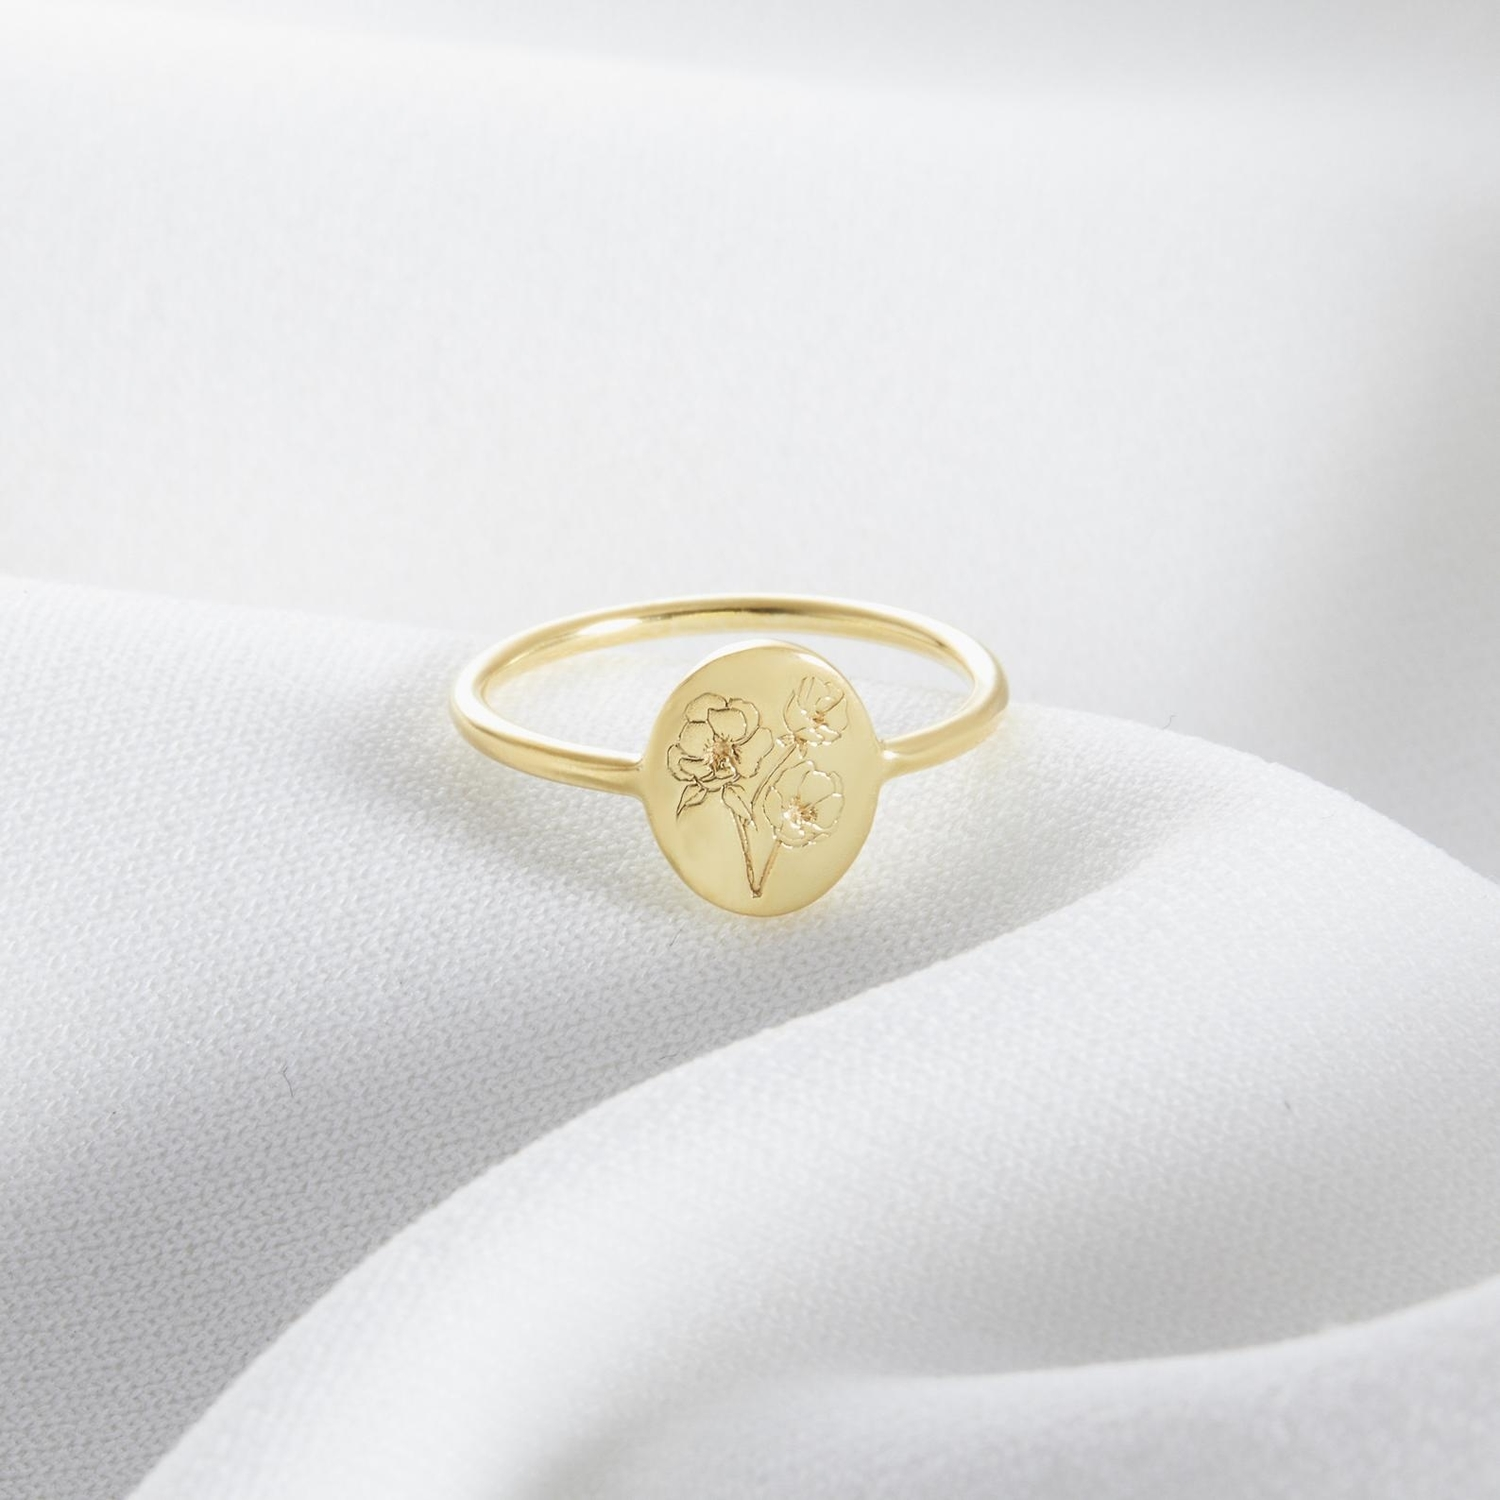 birth flower ring - Etsy finds